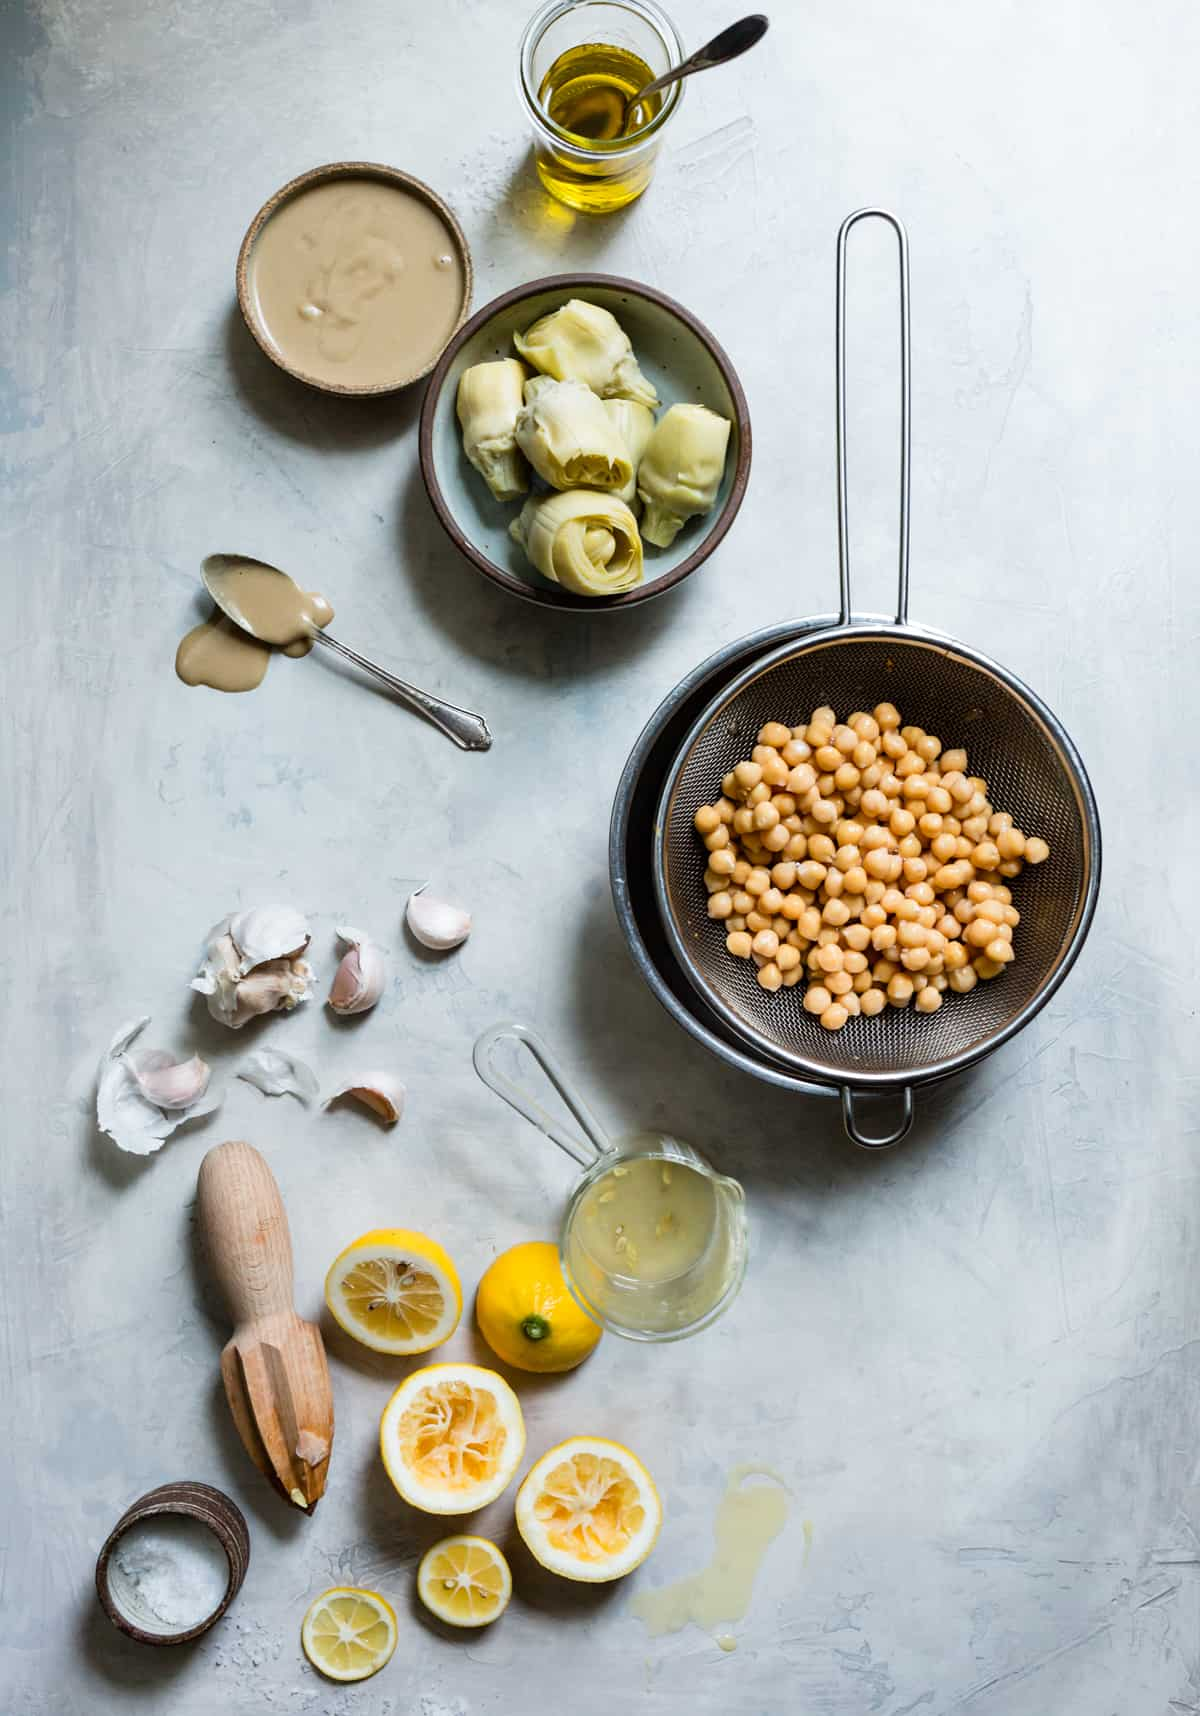 lemons and chickpeas